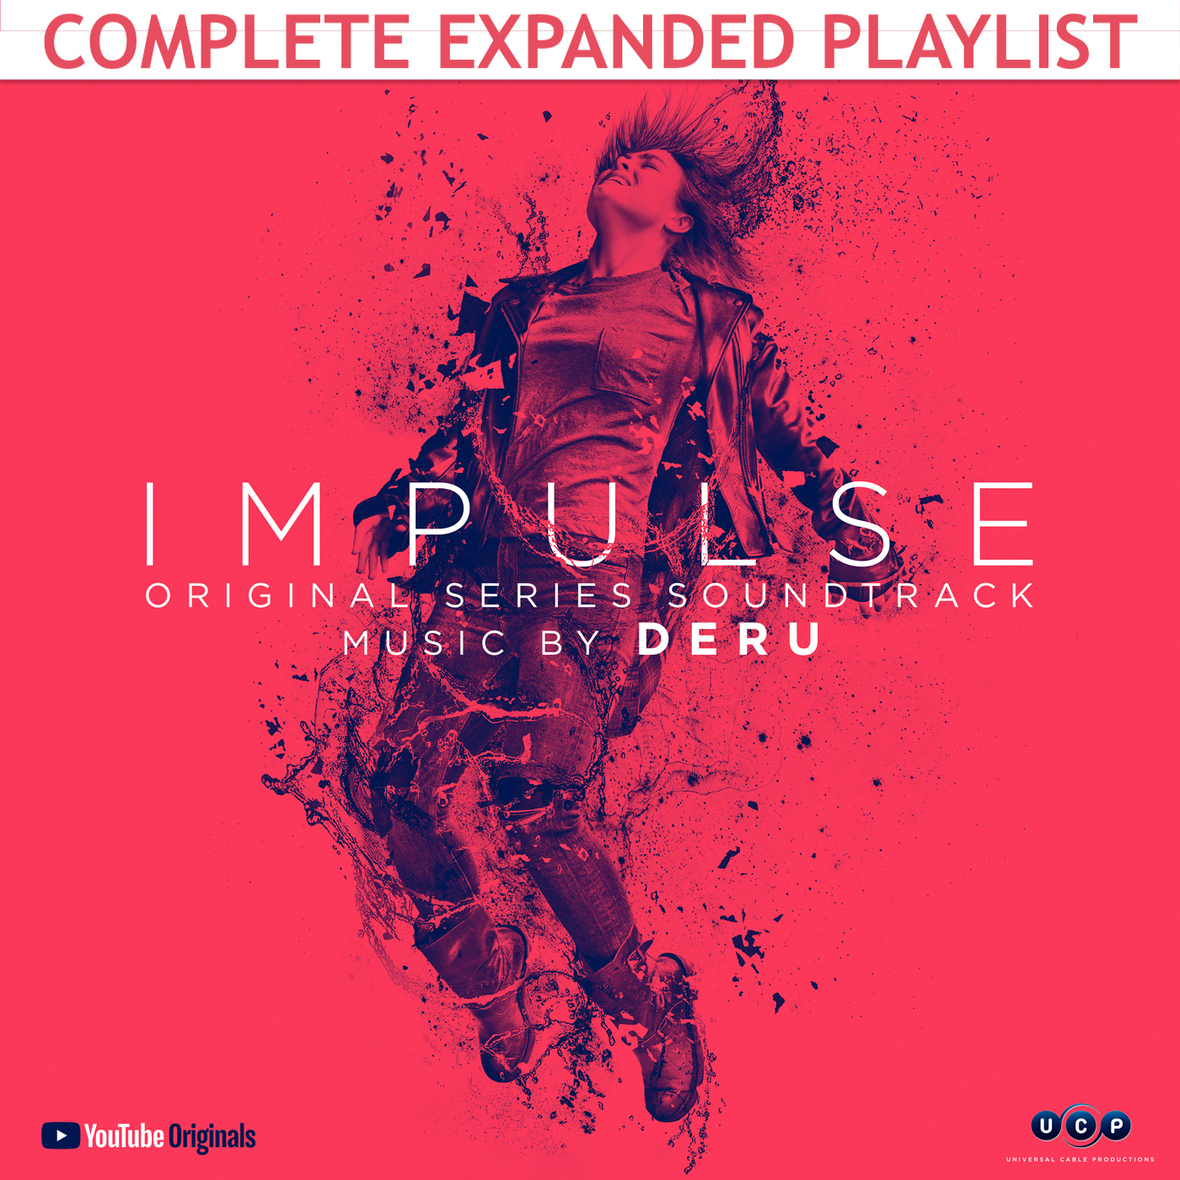 impulse 1400-spotify-expanded